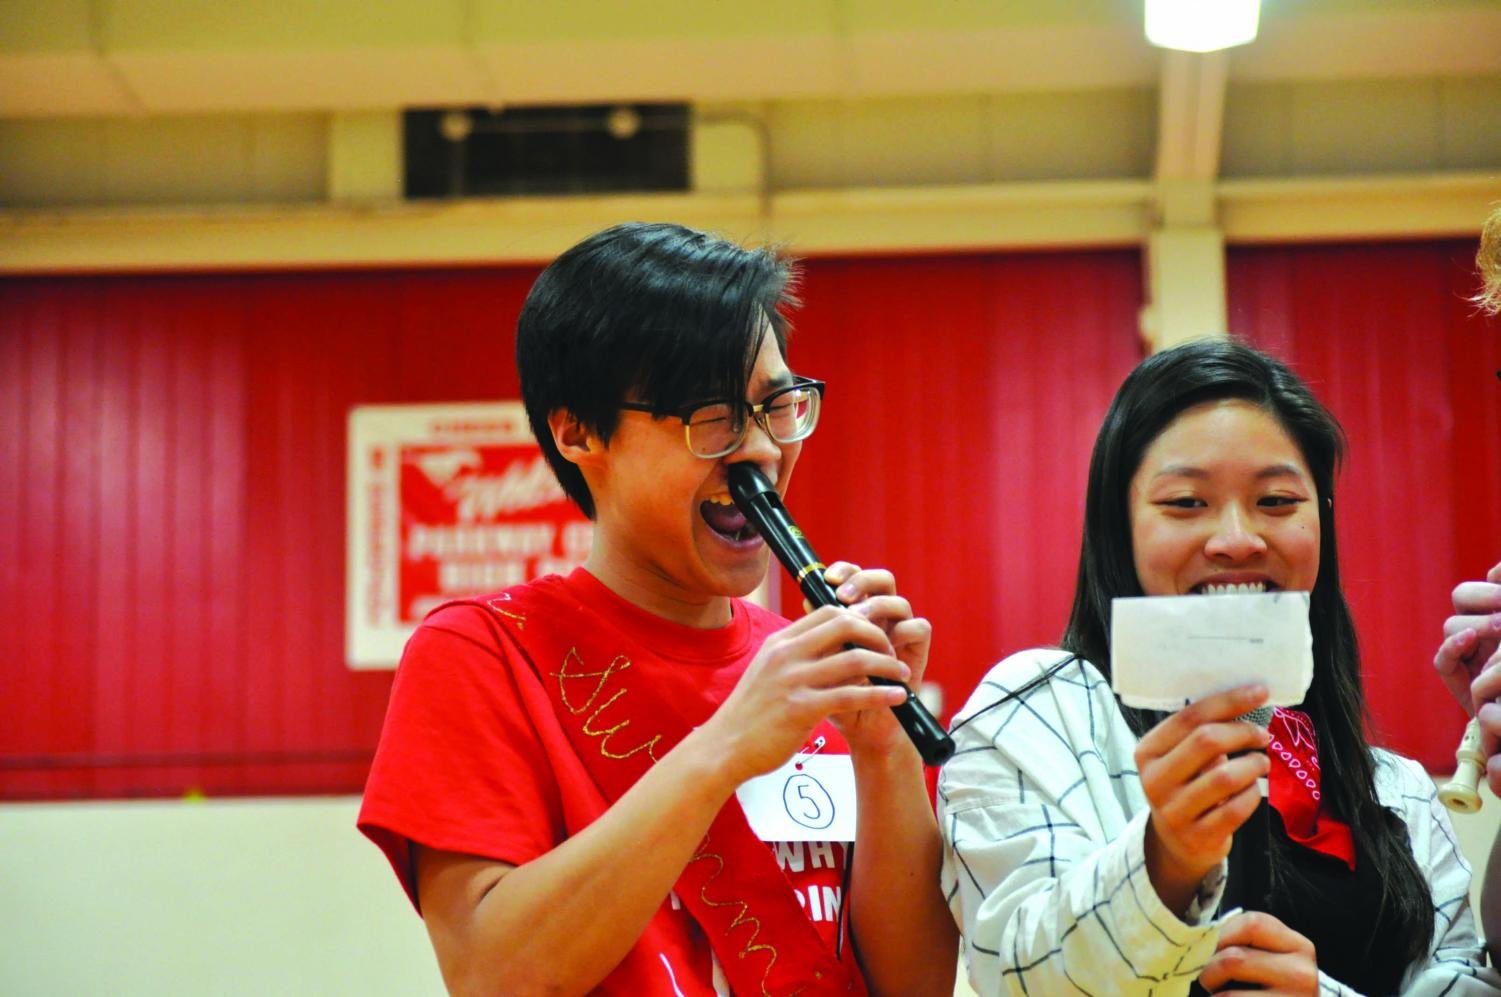 Left to right: Preston Chen plays the recorder with is nose while Tiffany Huang holds up notes.